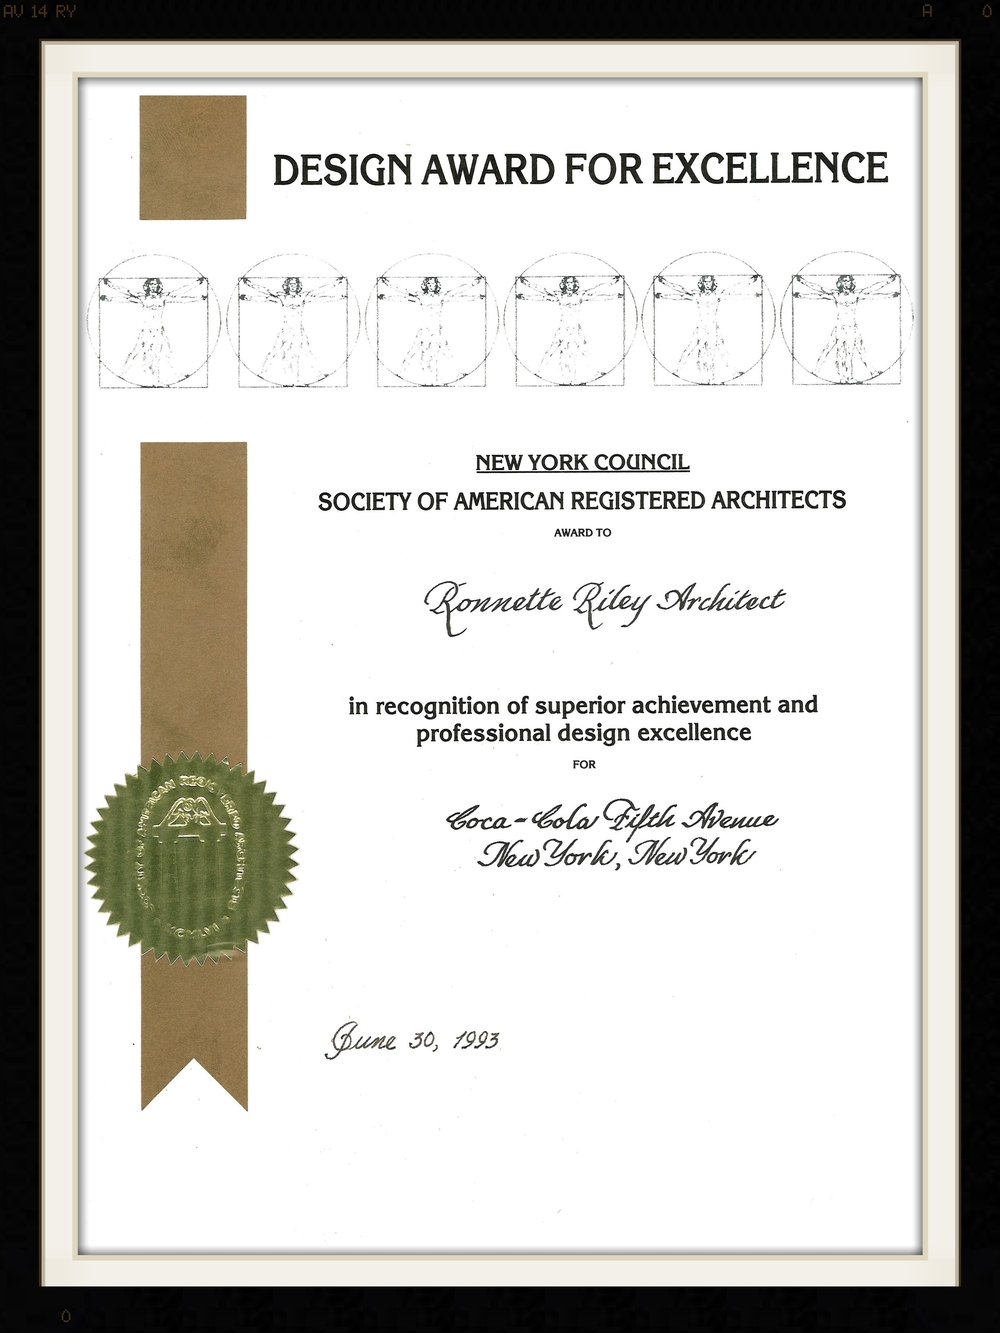 New York Council: Society of American Registered Architects